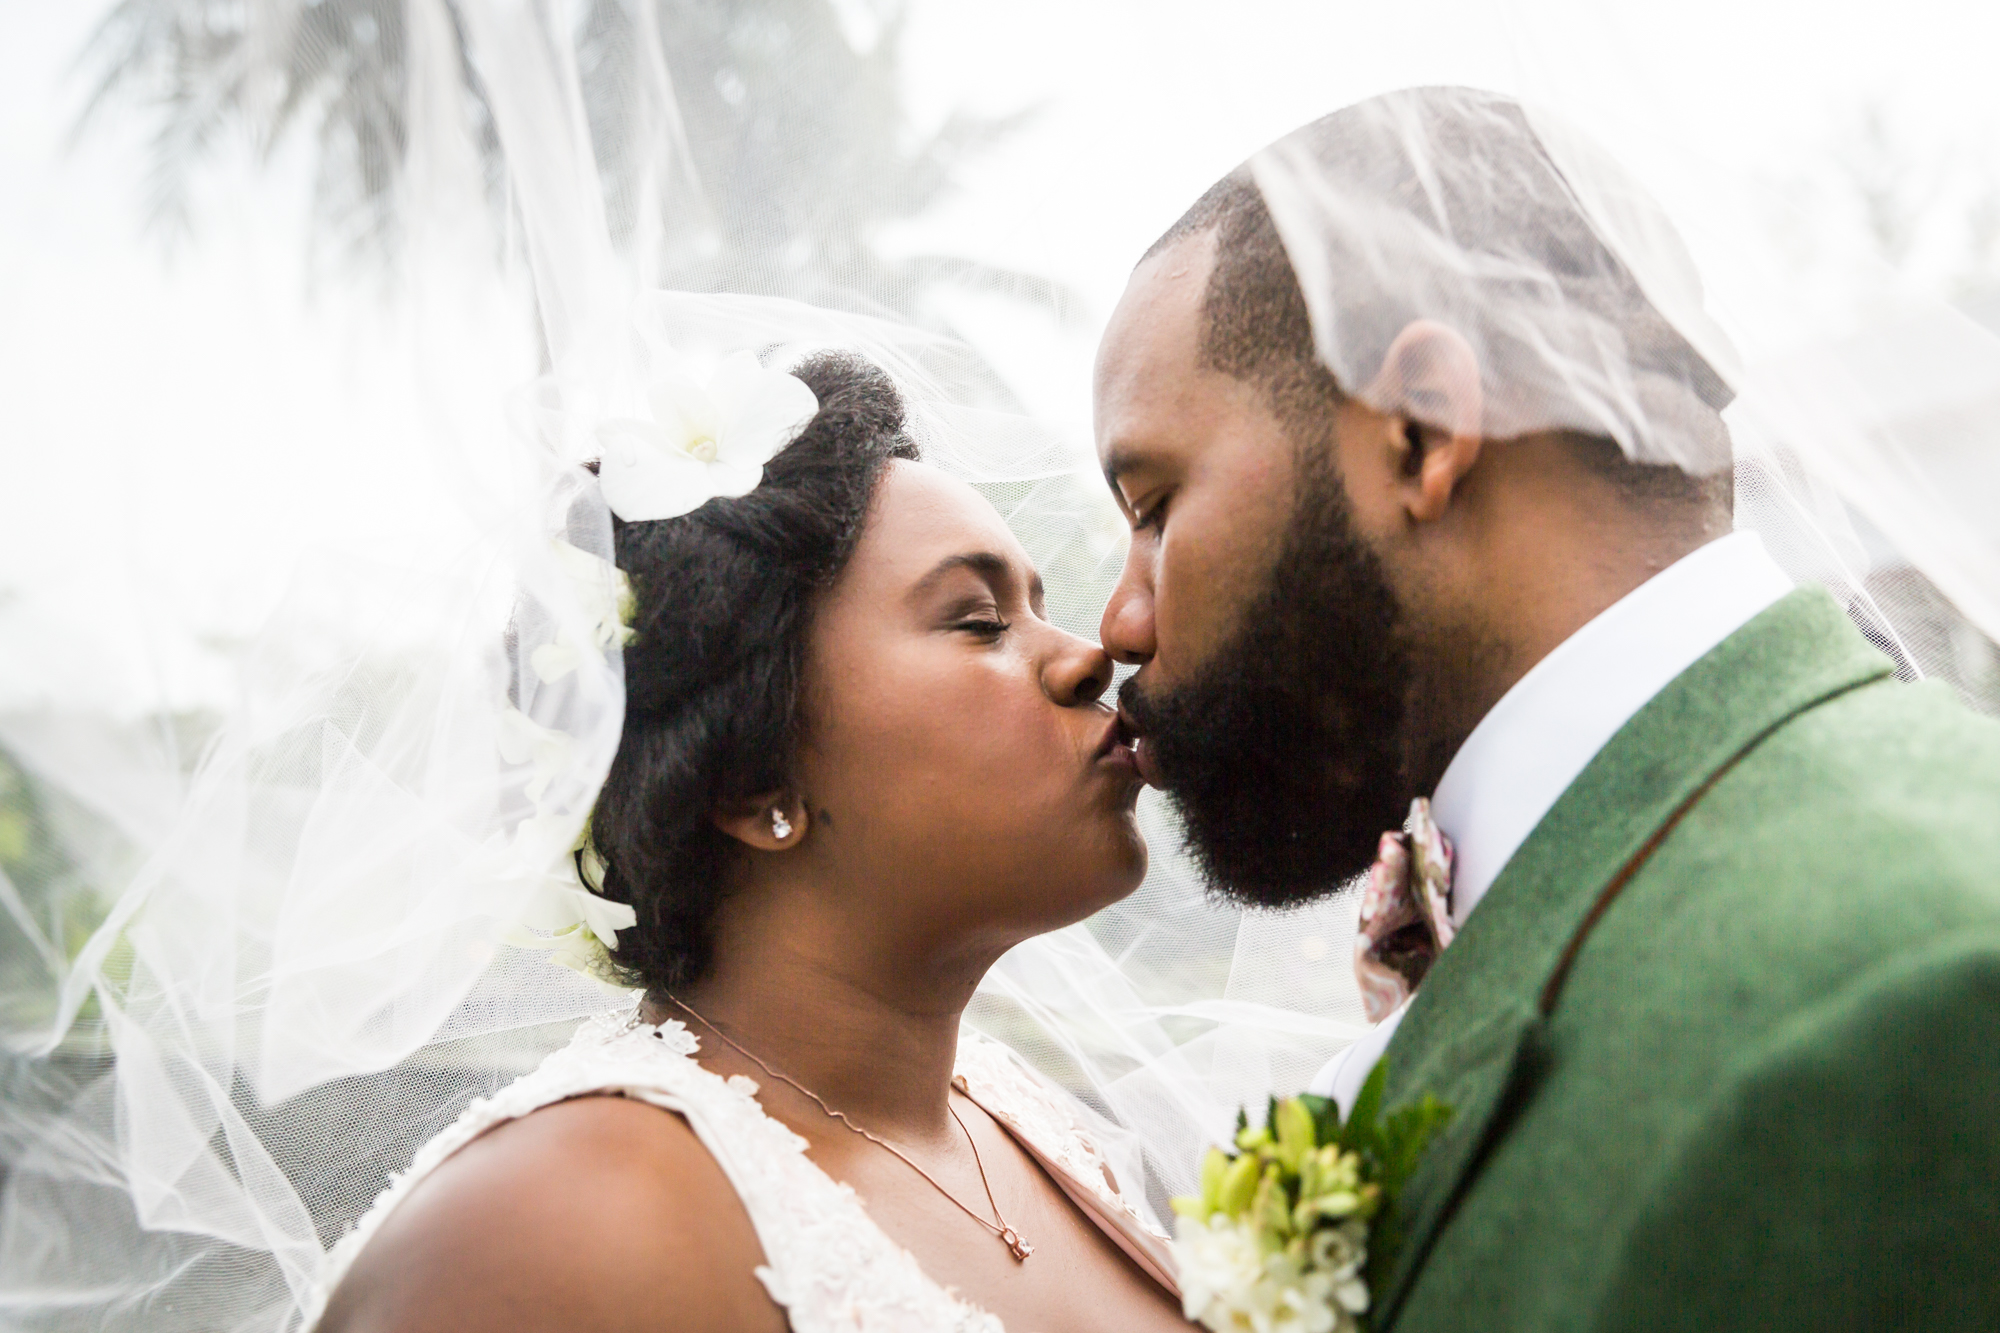 Bride and groom kissing under veil for an article on destination wedding planning tips